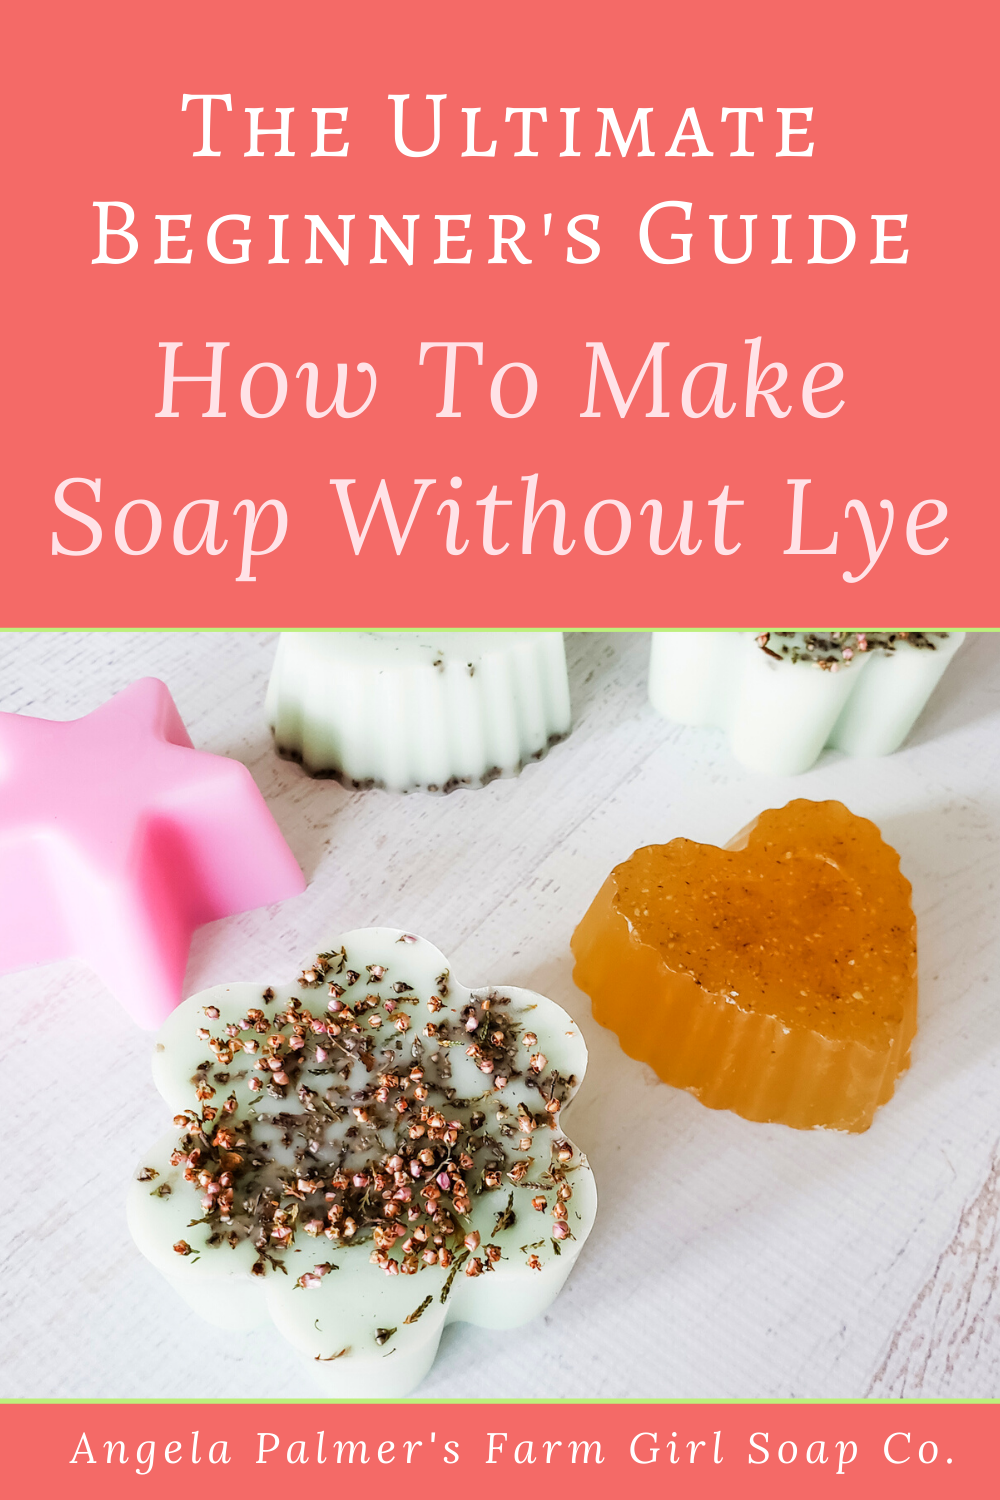 Can You Make Soap Without Lye The Ultimate Beginner S Guide To Making Handmade Soap Without Lye Lye Free Soap Recipes Homemade Soap Recipes Soap Making